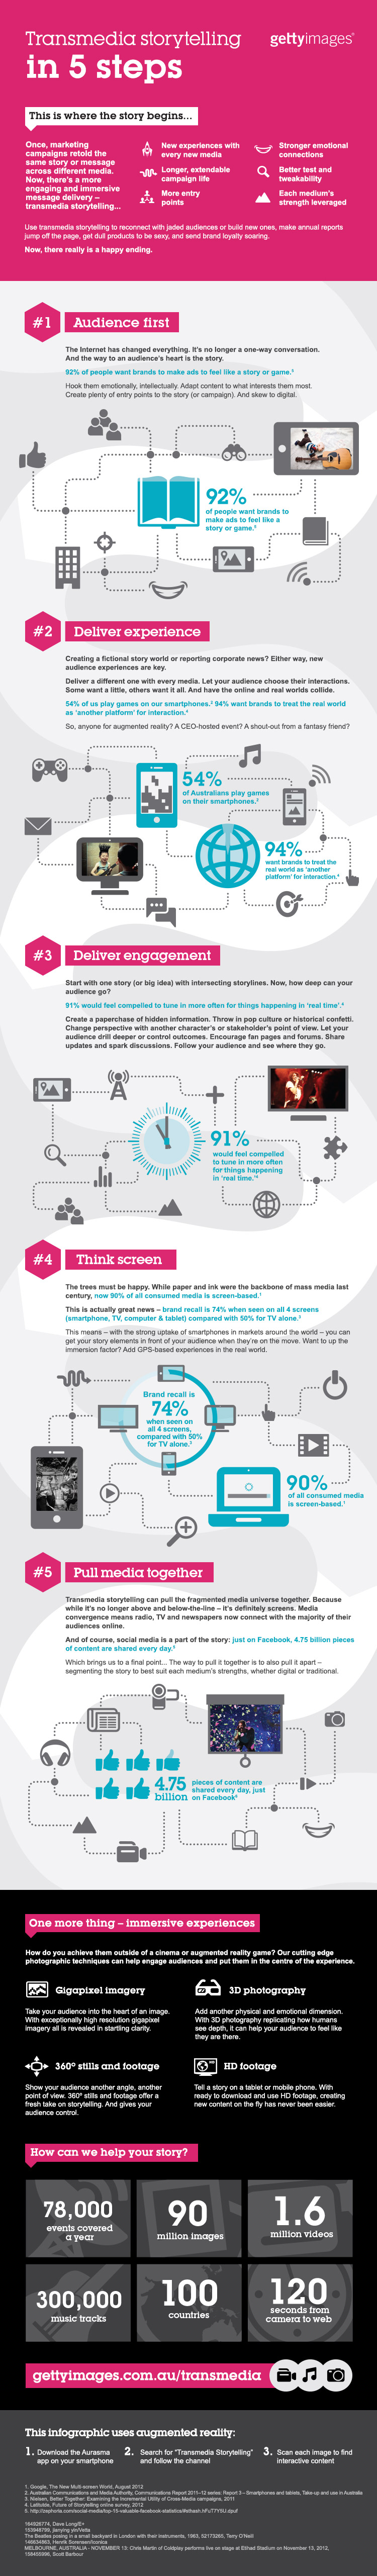 Transmedia Storytelling Infographic - Getty Images